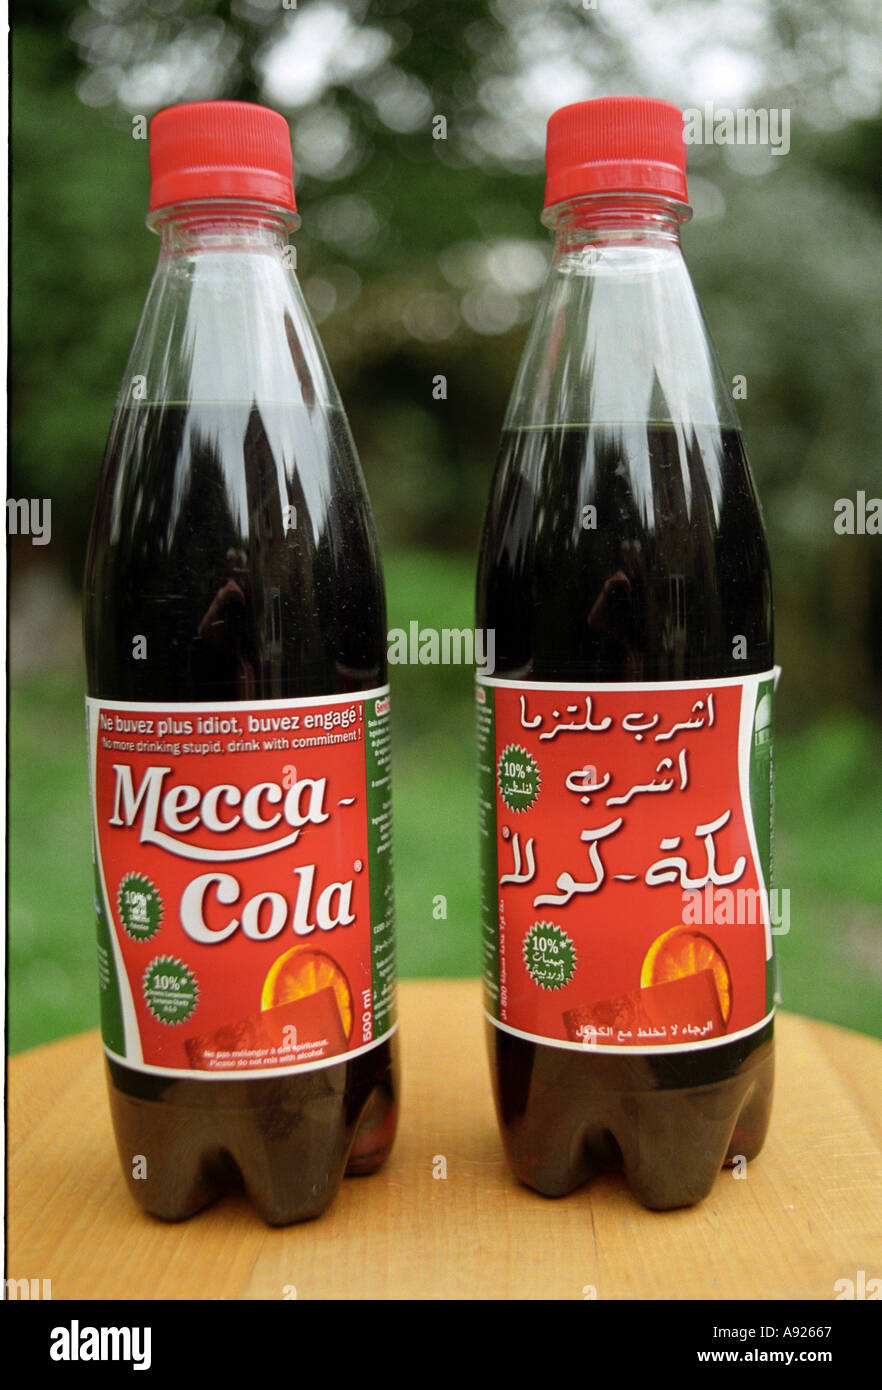 the muslim world of colas A british company enters the islamic cola market, hoping to emulate the success of mecca and zamzam colas  against them in the muslim world, company.